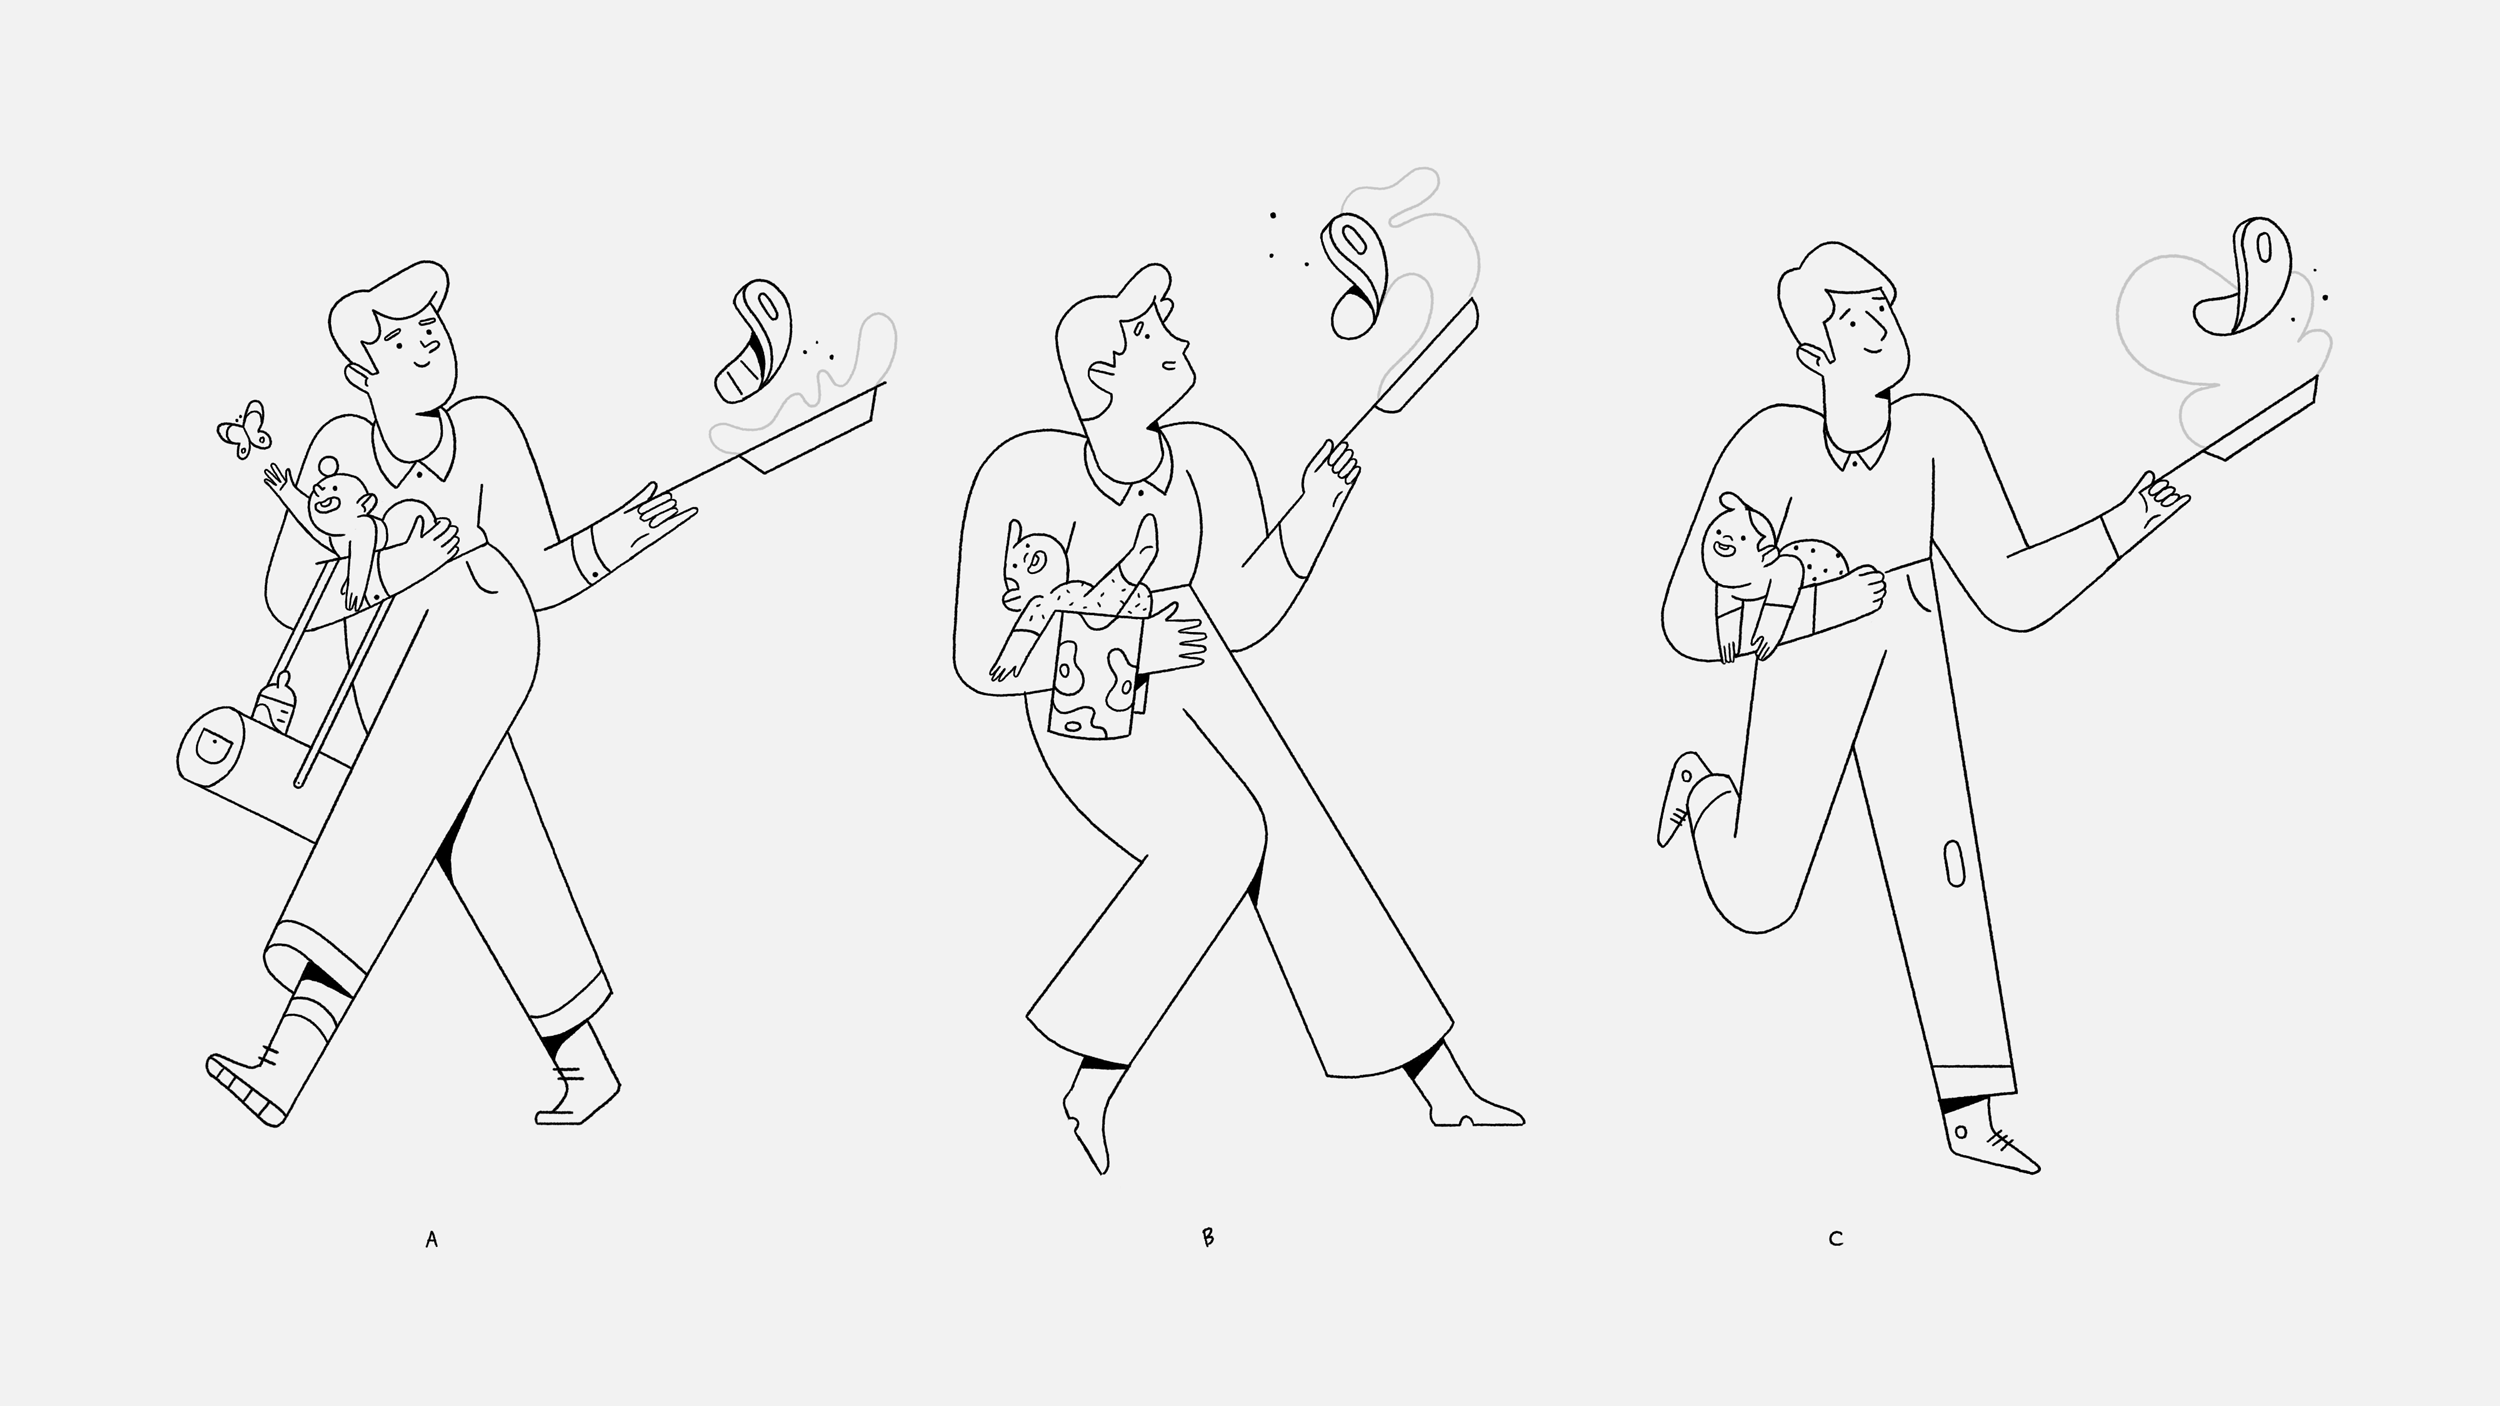 Airbnb_characters_sketch_01_v2.png